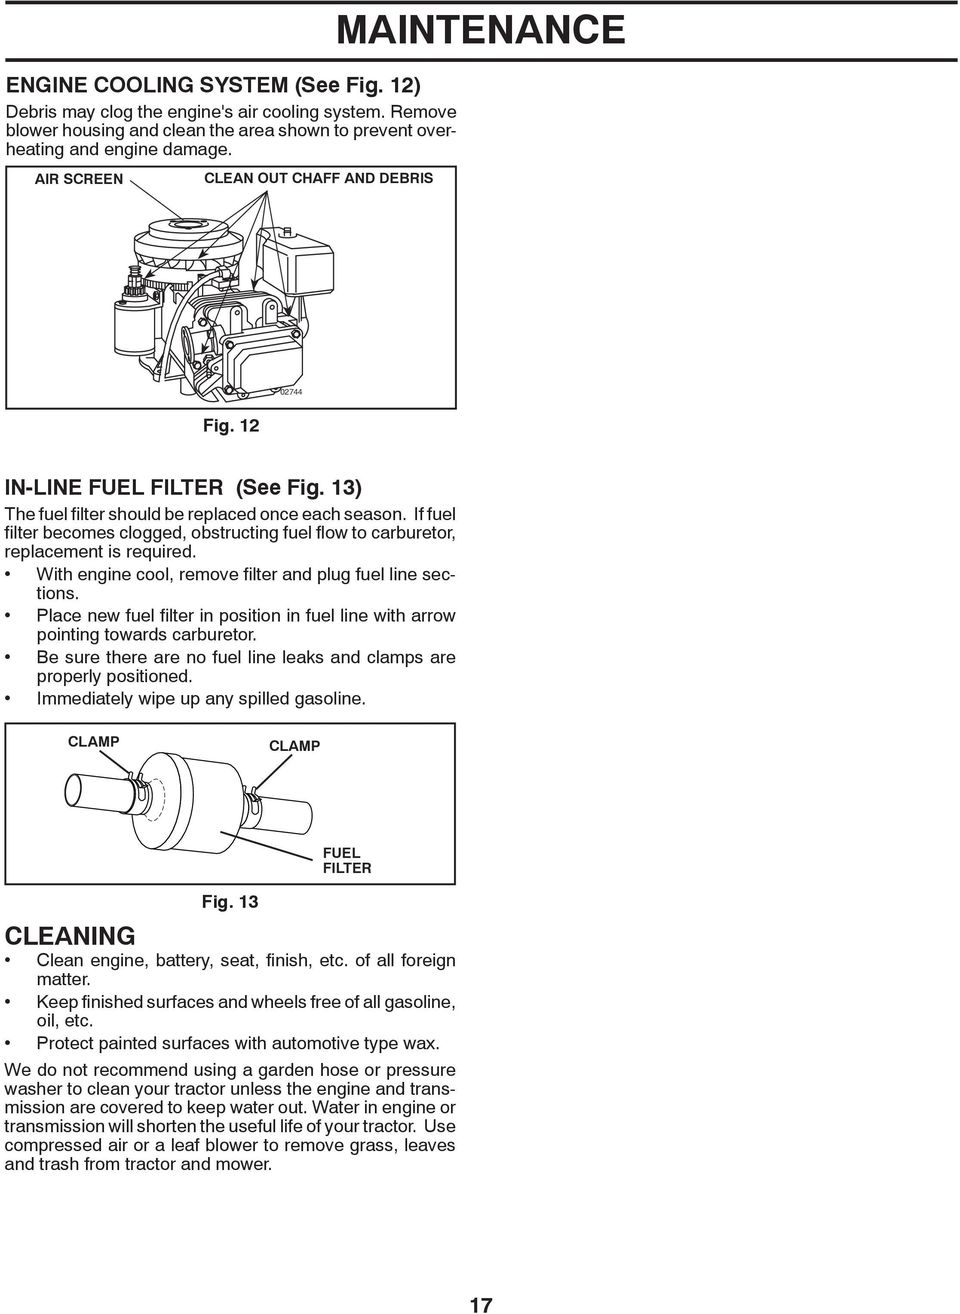 Po17542lt Lawn Tractor Model Operators Manual Sr Warning Pdf Poulan Wiring Diagram If Fuel Filter Becomes Clogged Ob Struct Ing Flow To Car Bu Re Tor